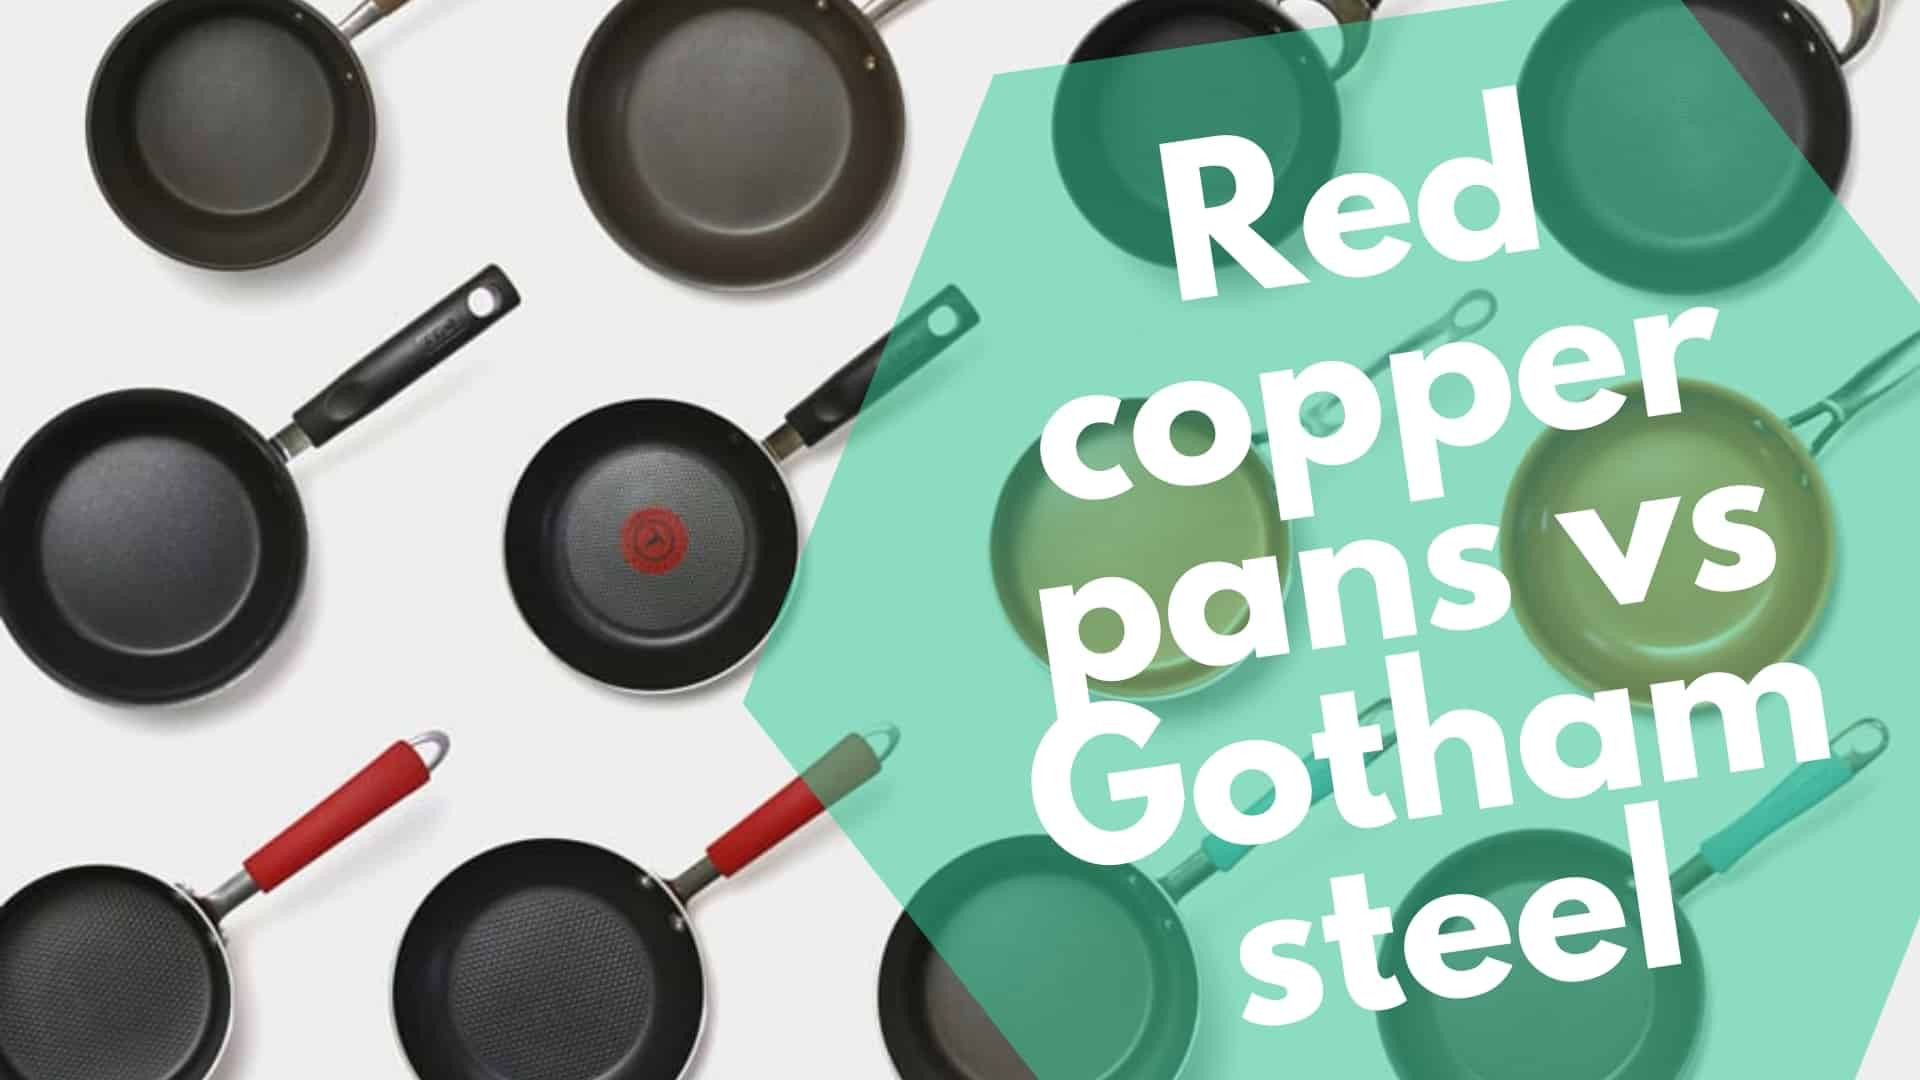 Red copper pans vs Gotham steel